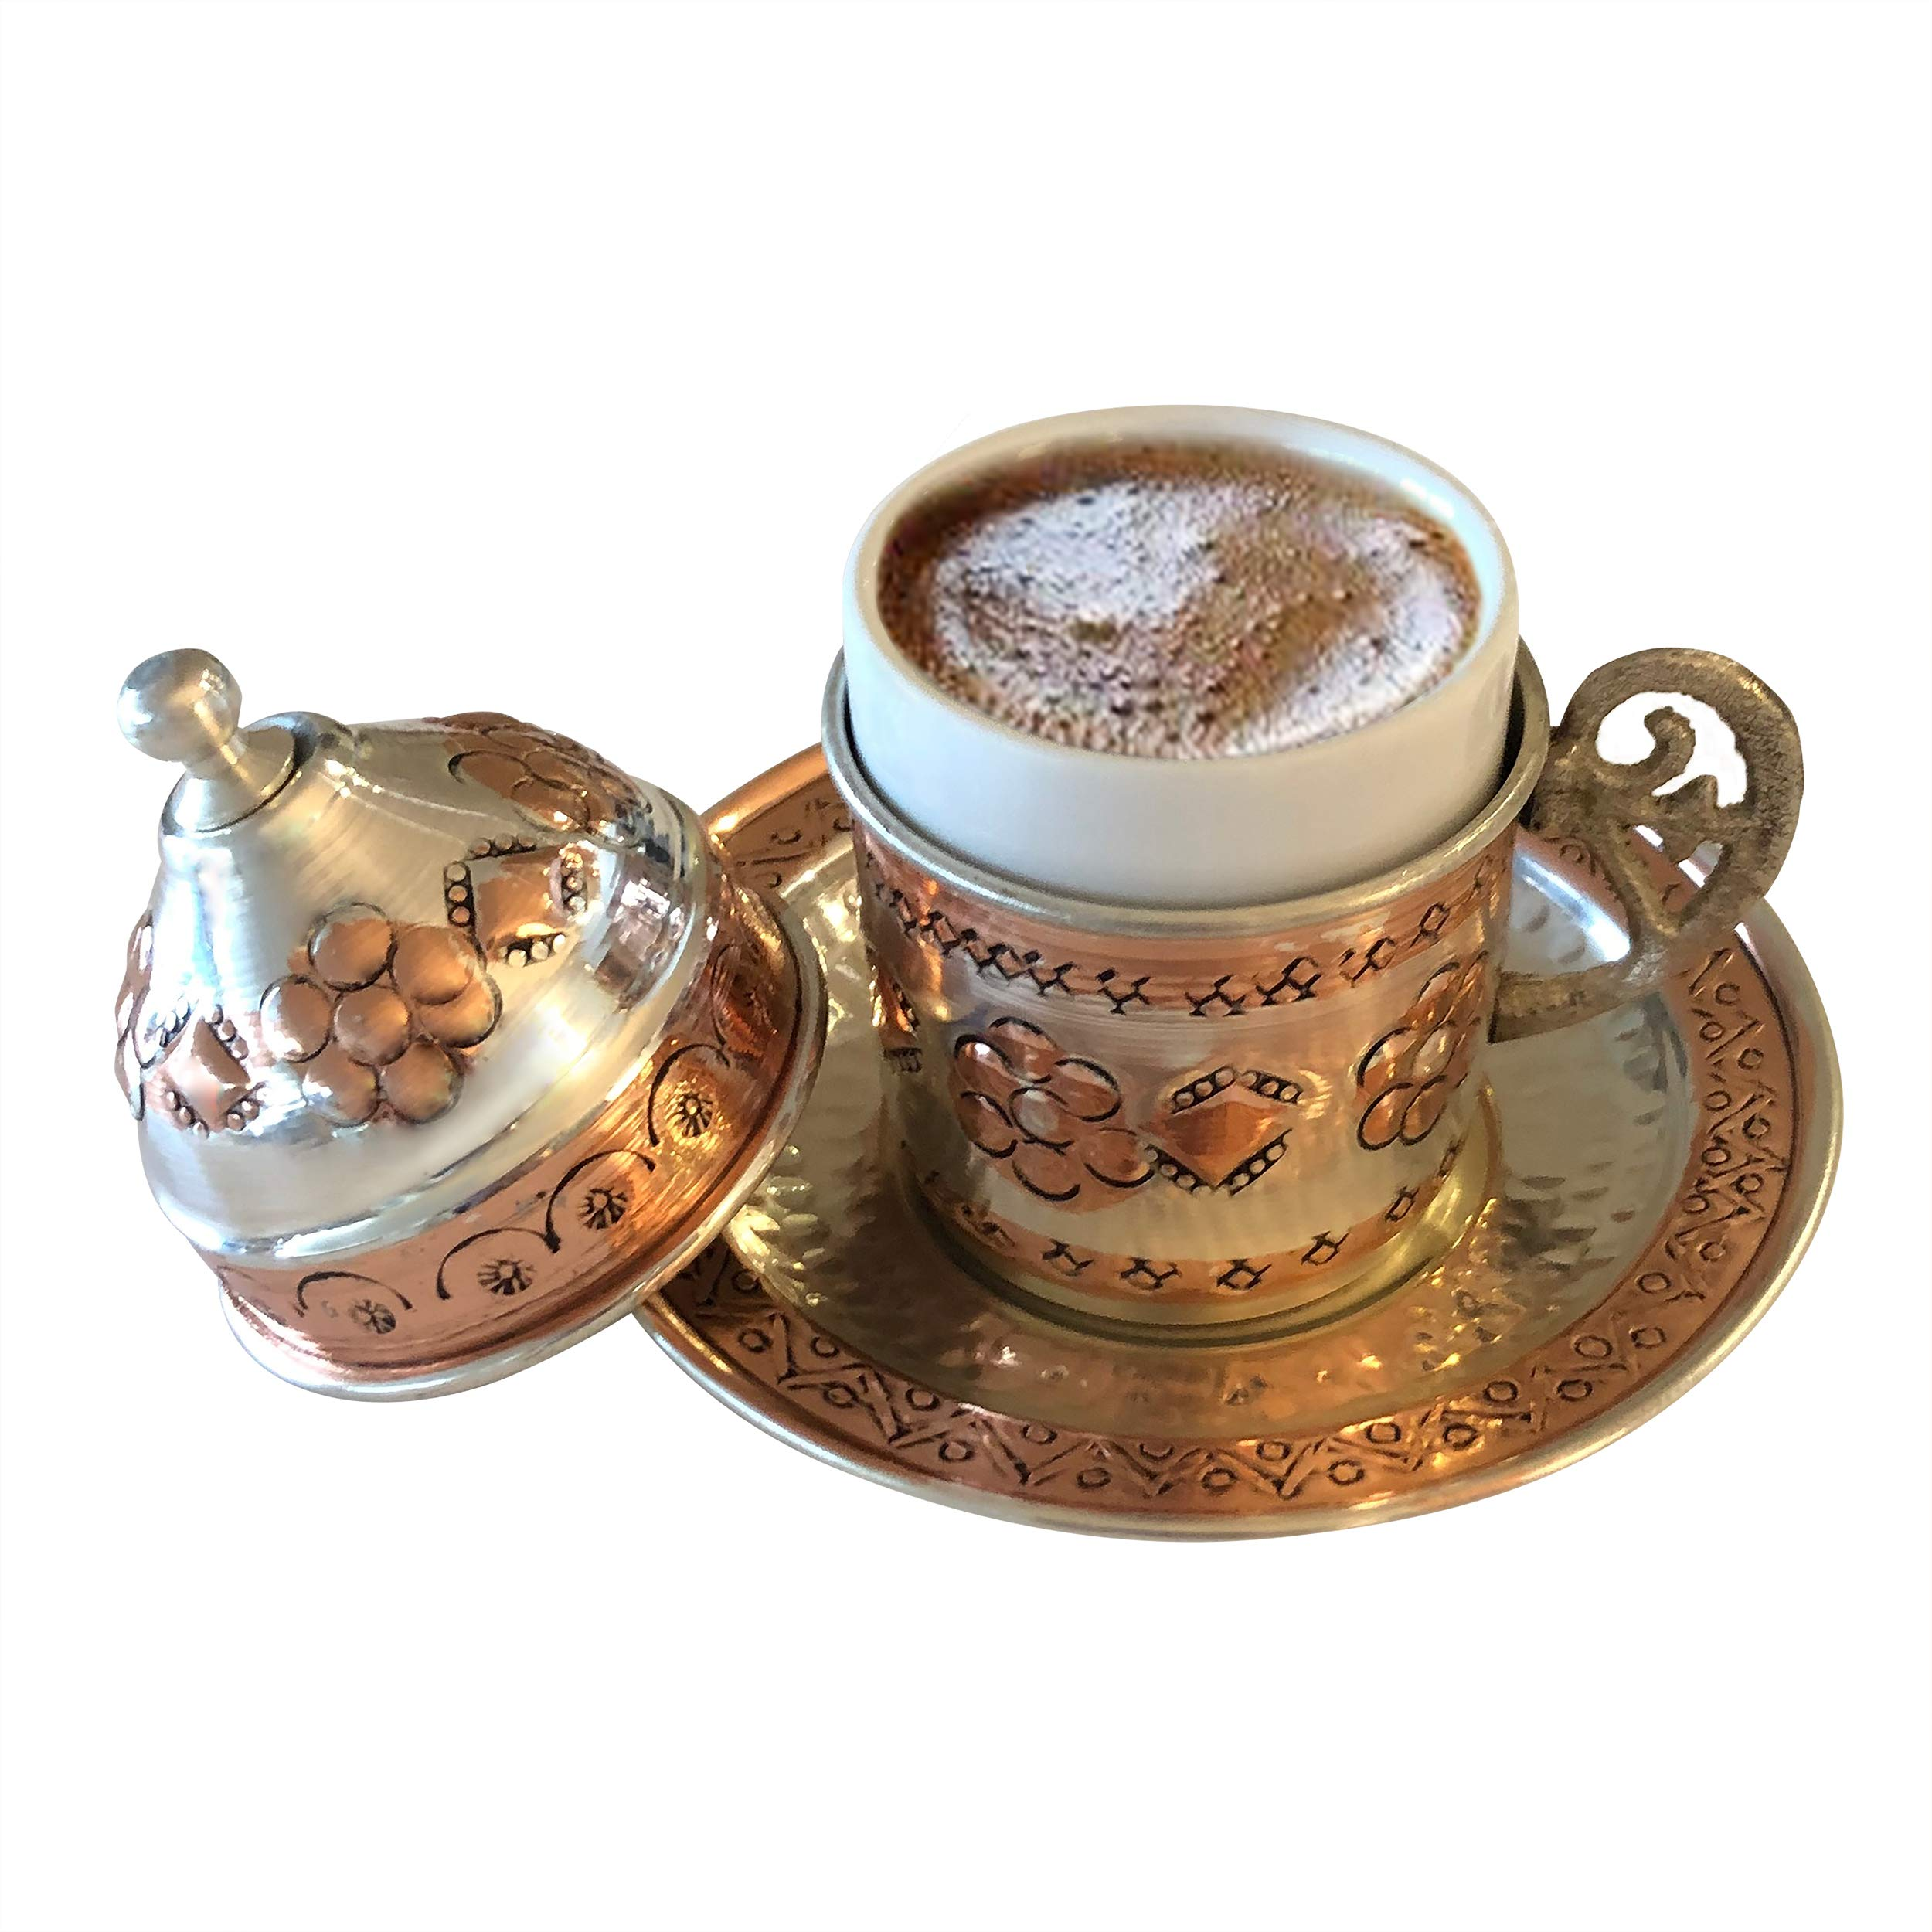 Copper Turkish Coffee Set, Six Greek Armenian Arabic Espresso Porcelain Cups Tray Sugar Bowl, with Silver-plate detail, Handcrafted by Mandalina Magic by Mandalina Magic (Image #8)